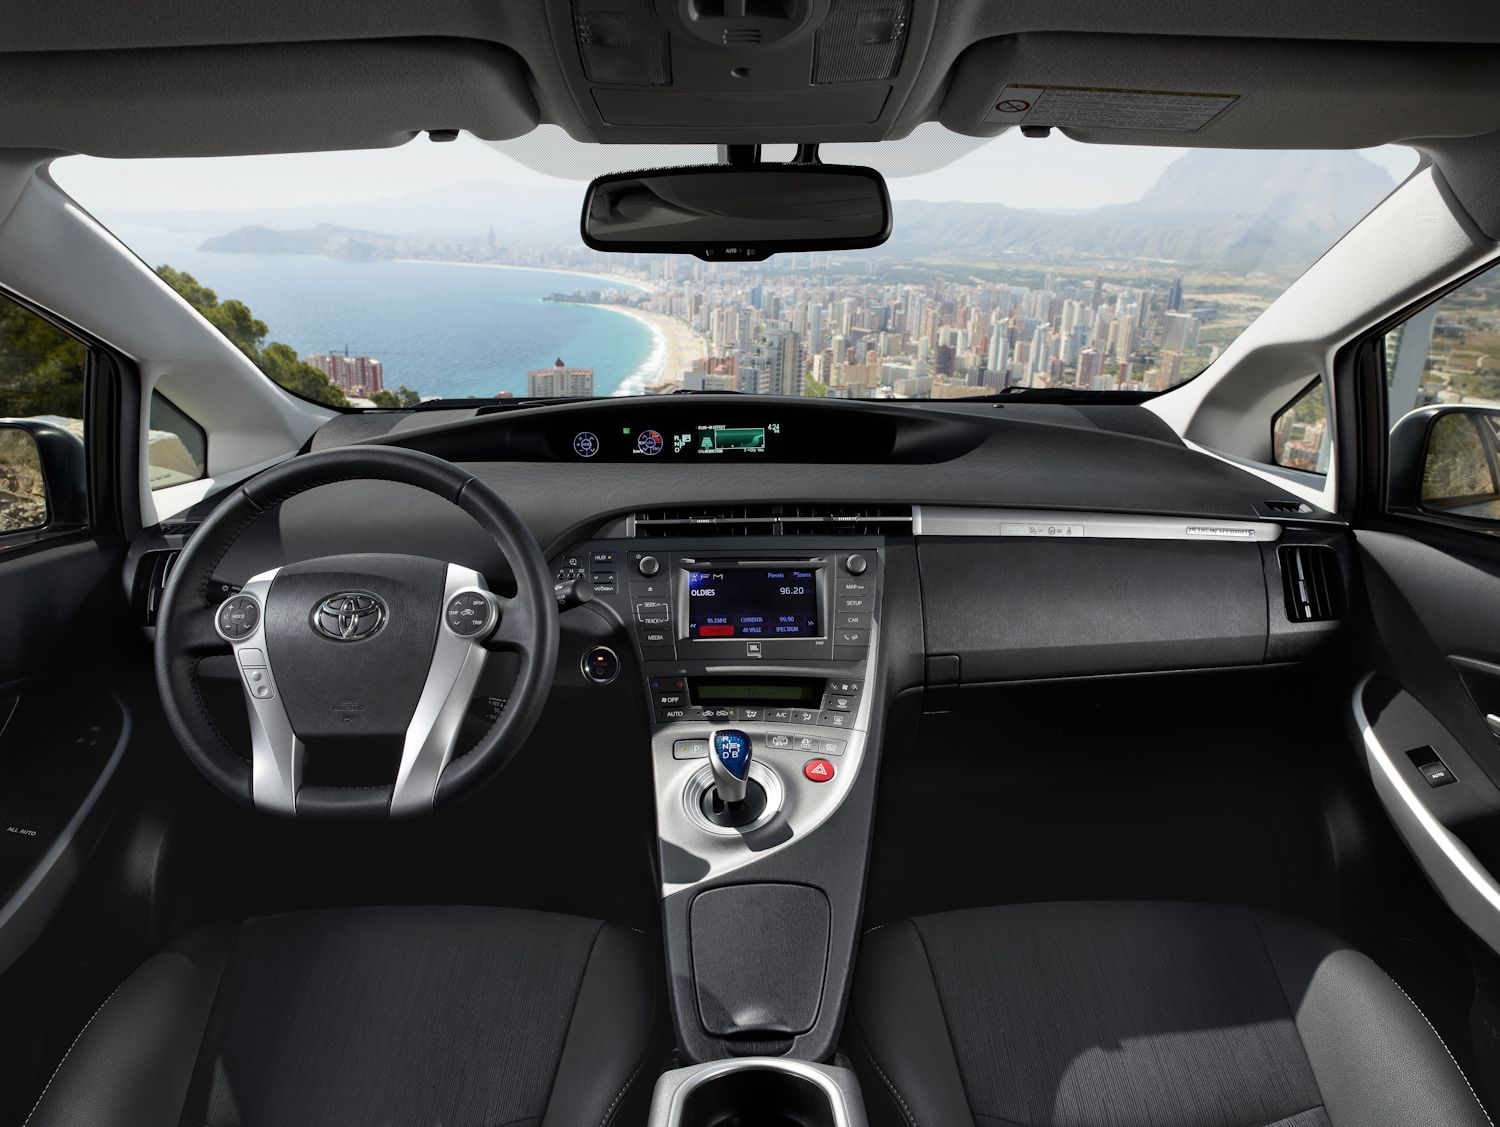 Image For Toyota Prius Plug In Hybrid Interior